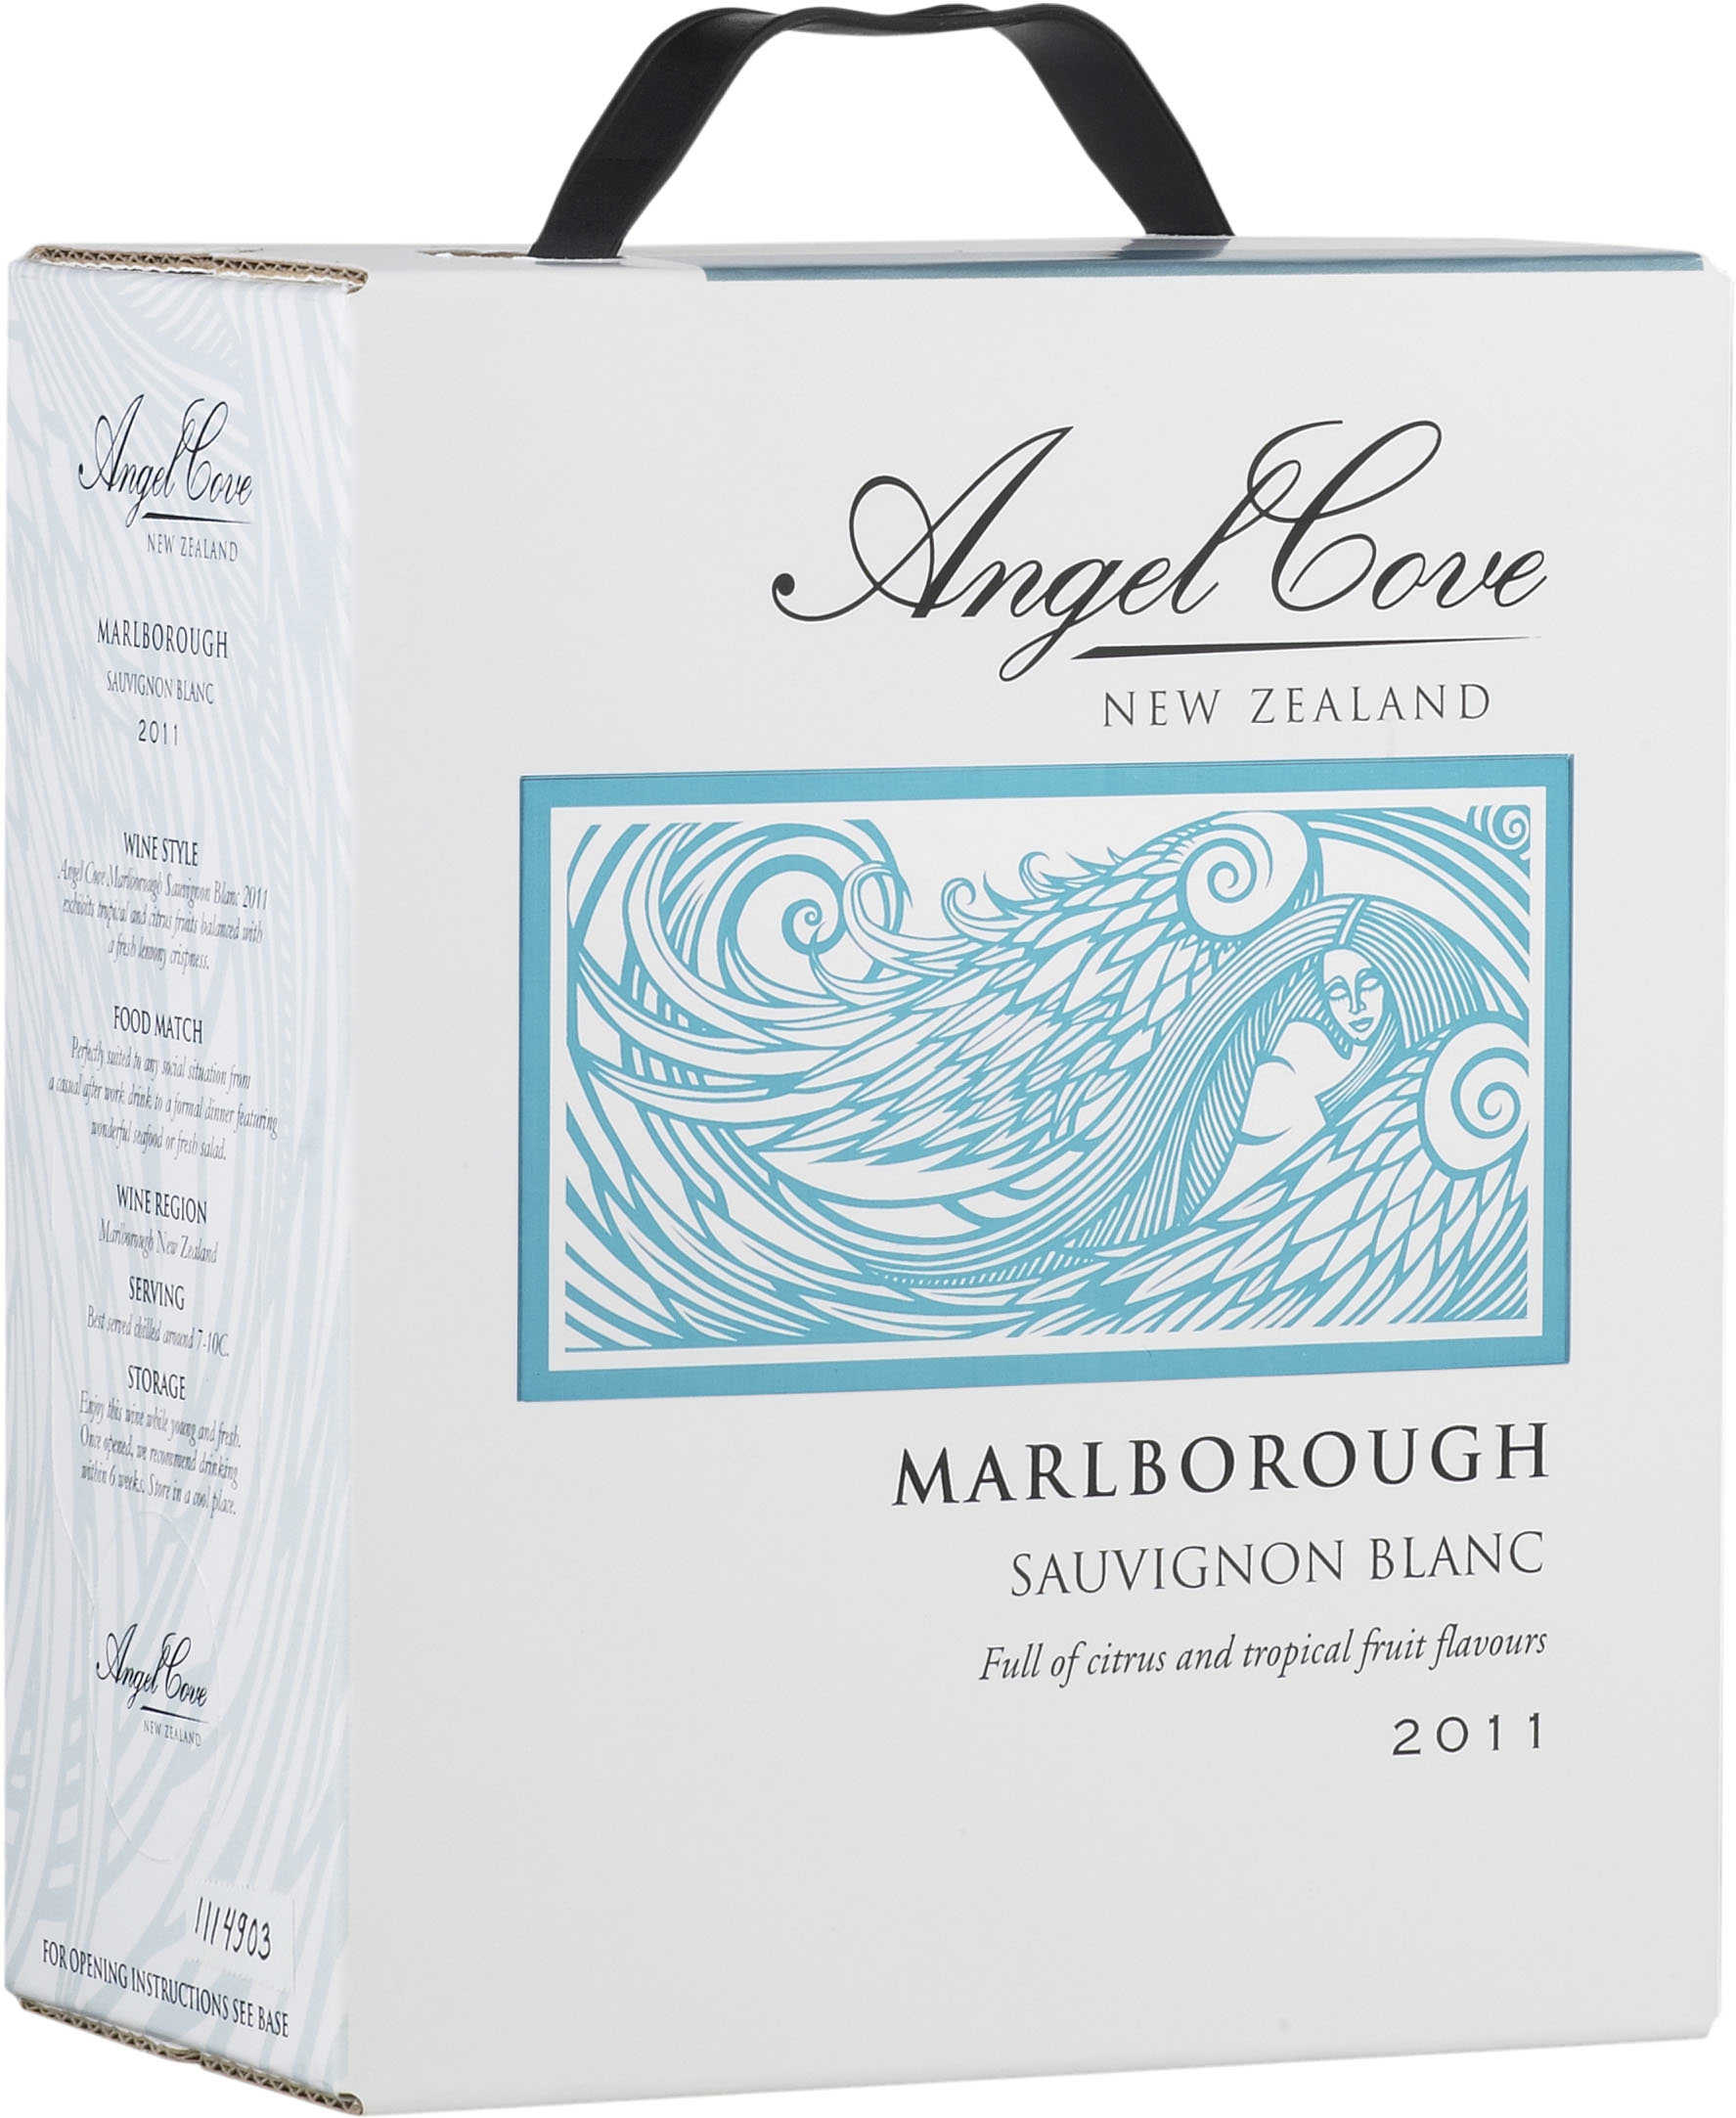 Angel Cove Marlborough Sauvignon Blanc